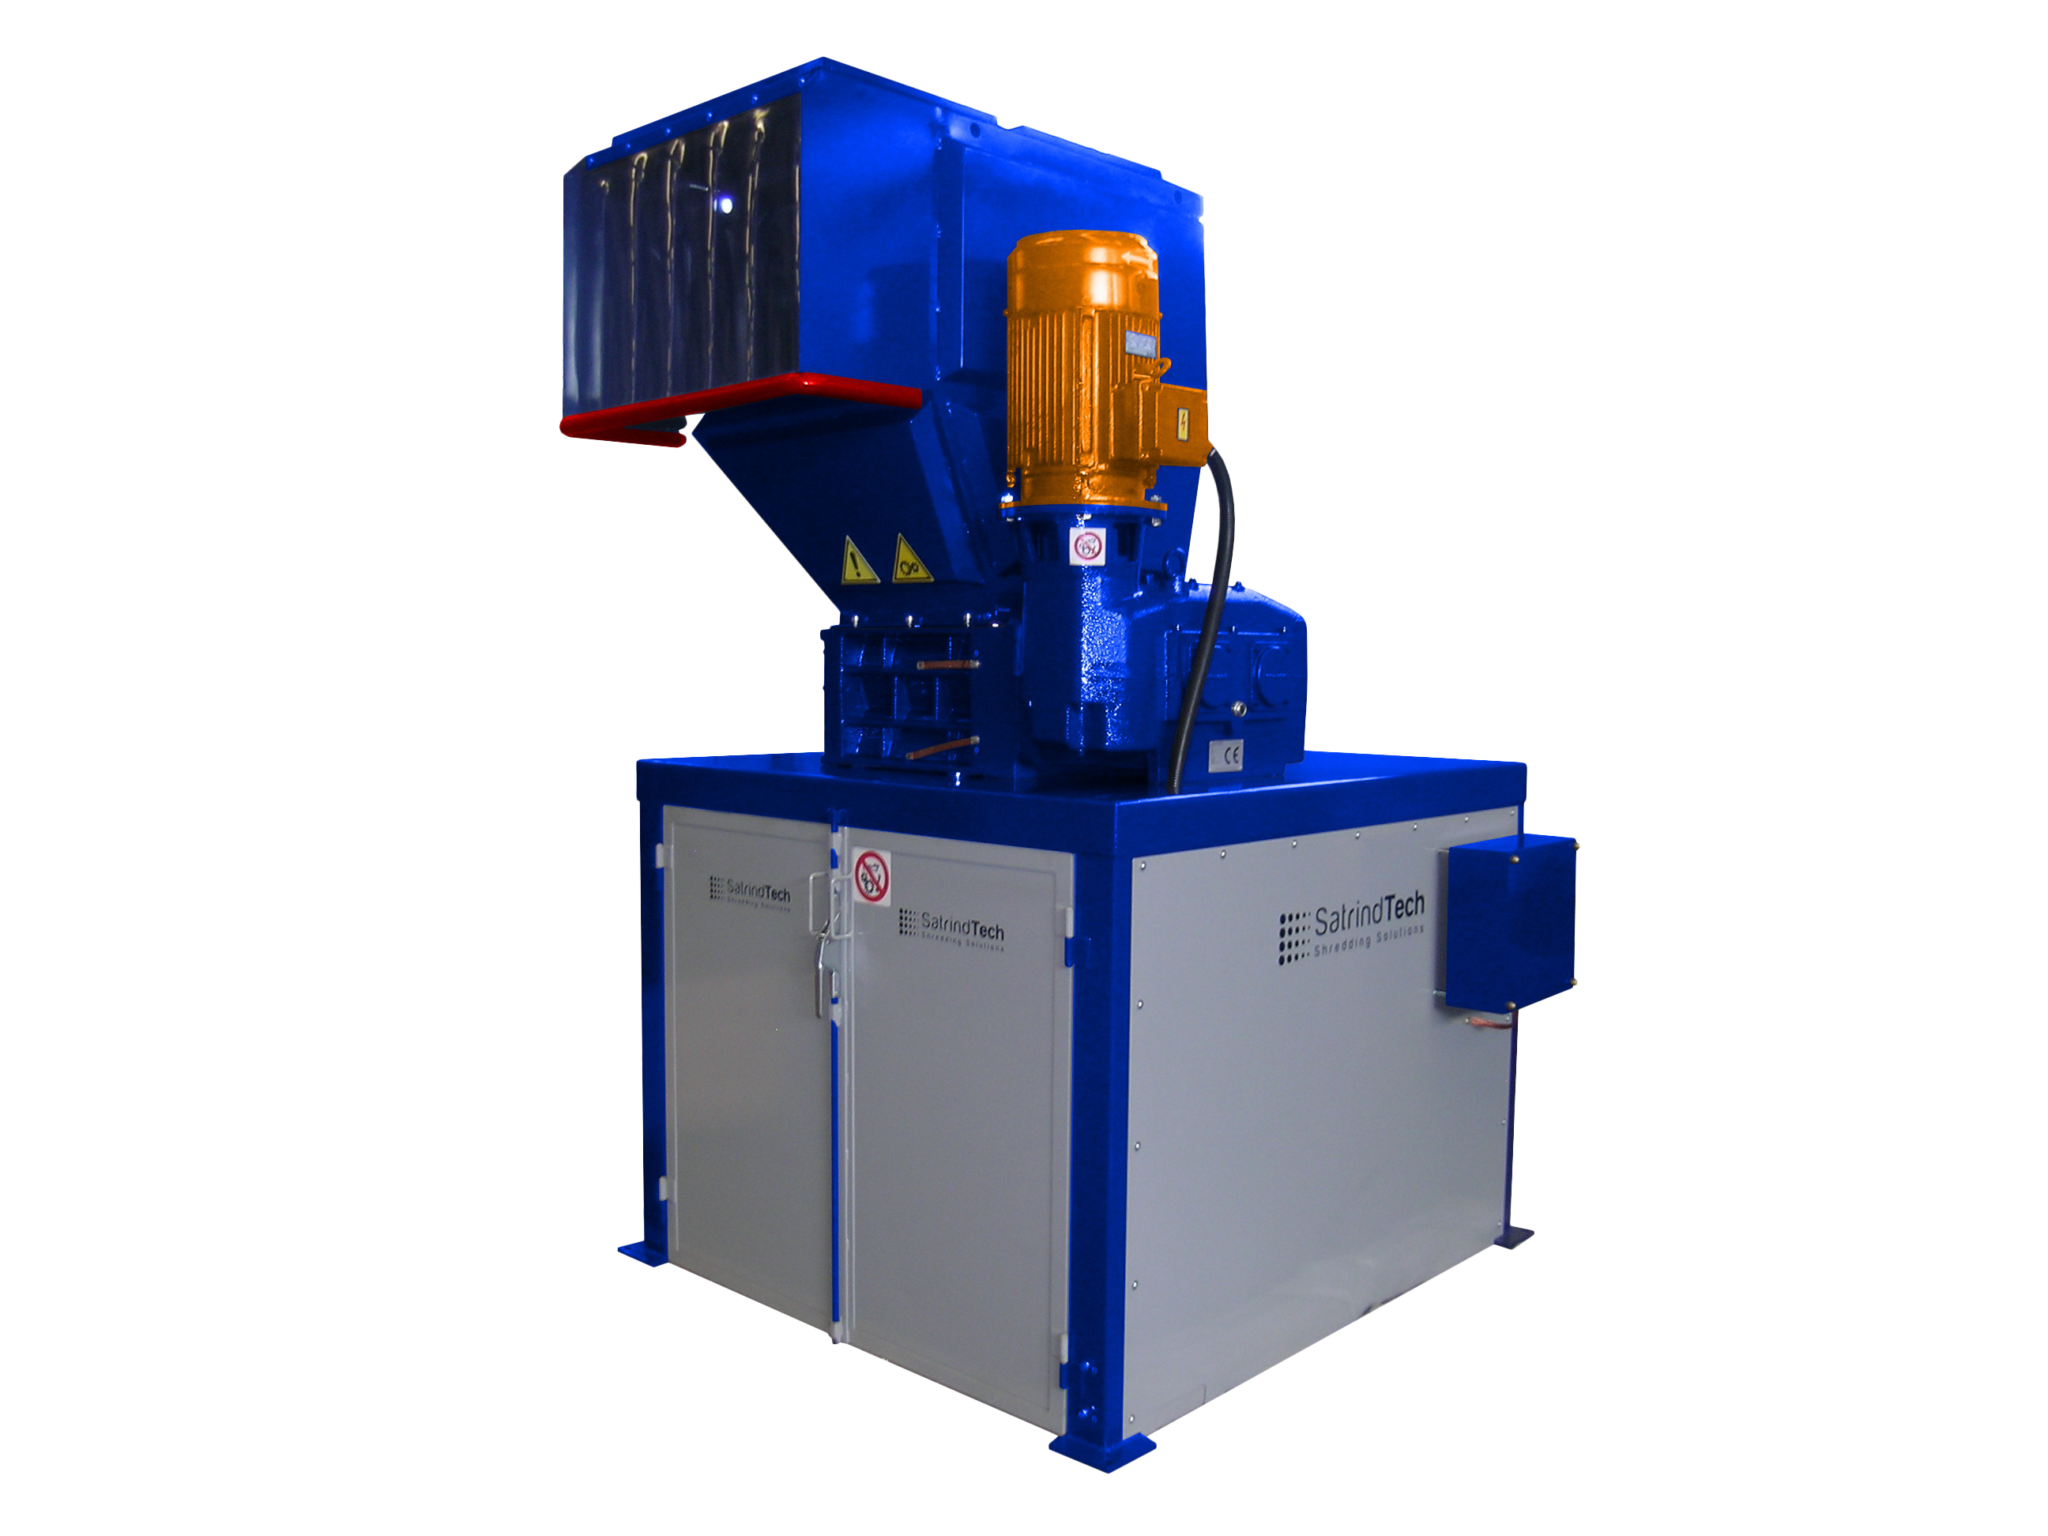 2 shaft industrial shredder F 15 HP series electric drive with grinder | SatrindTech Srl